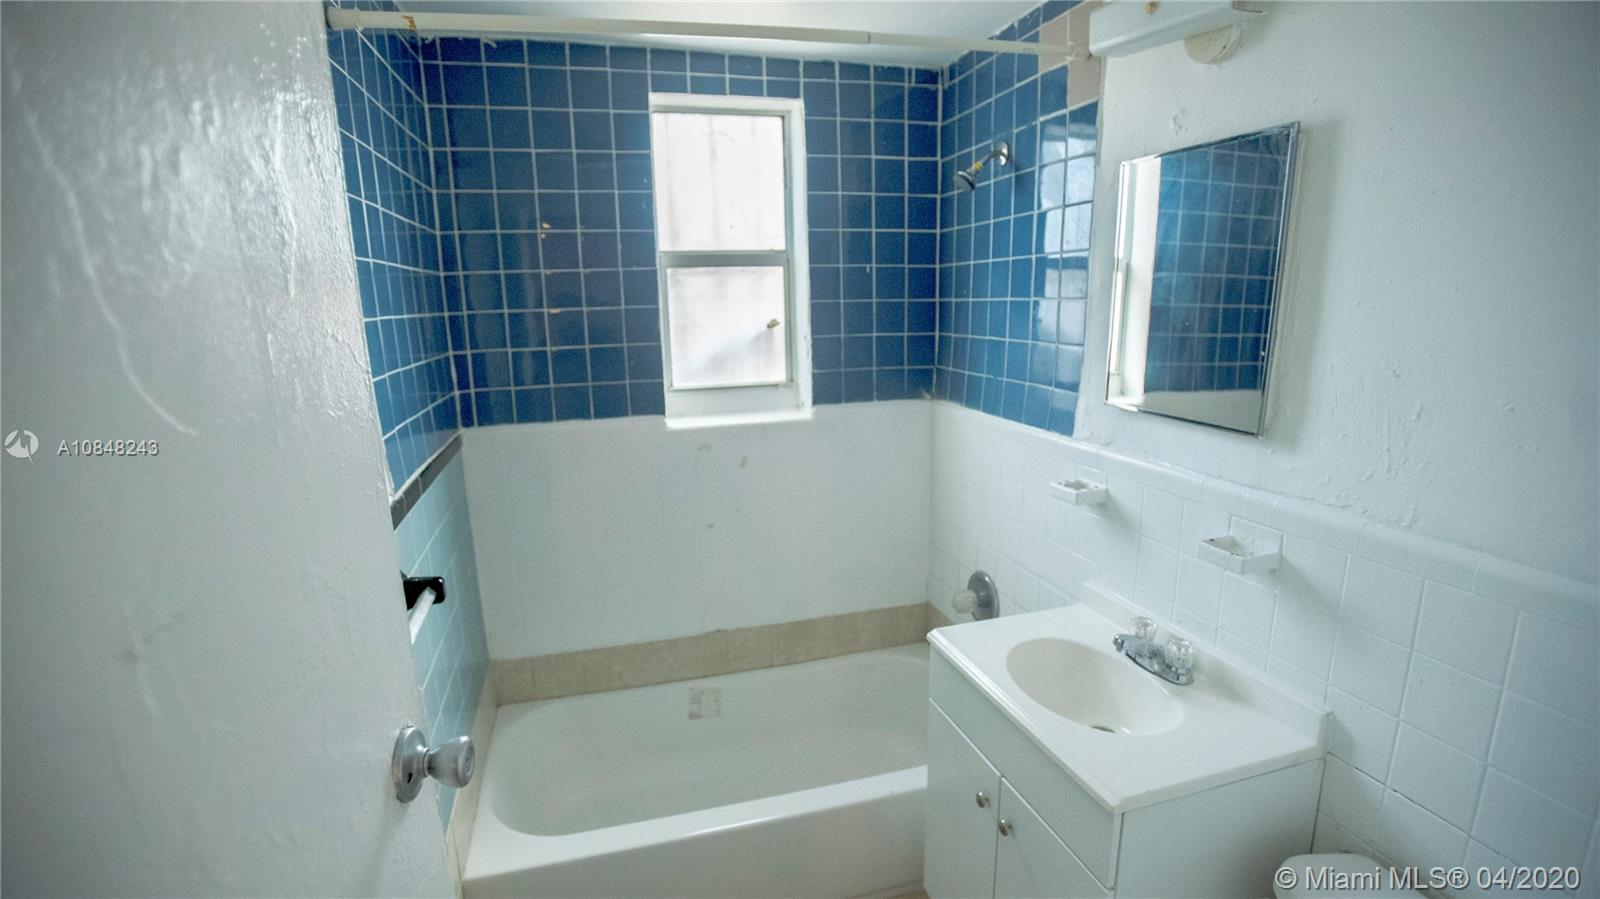 825 NW 70th St #10 For Sale A10848243, FL